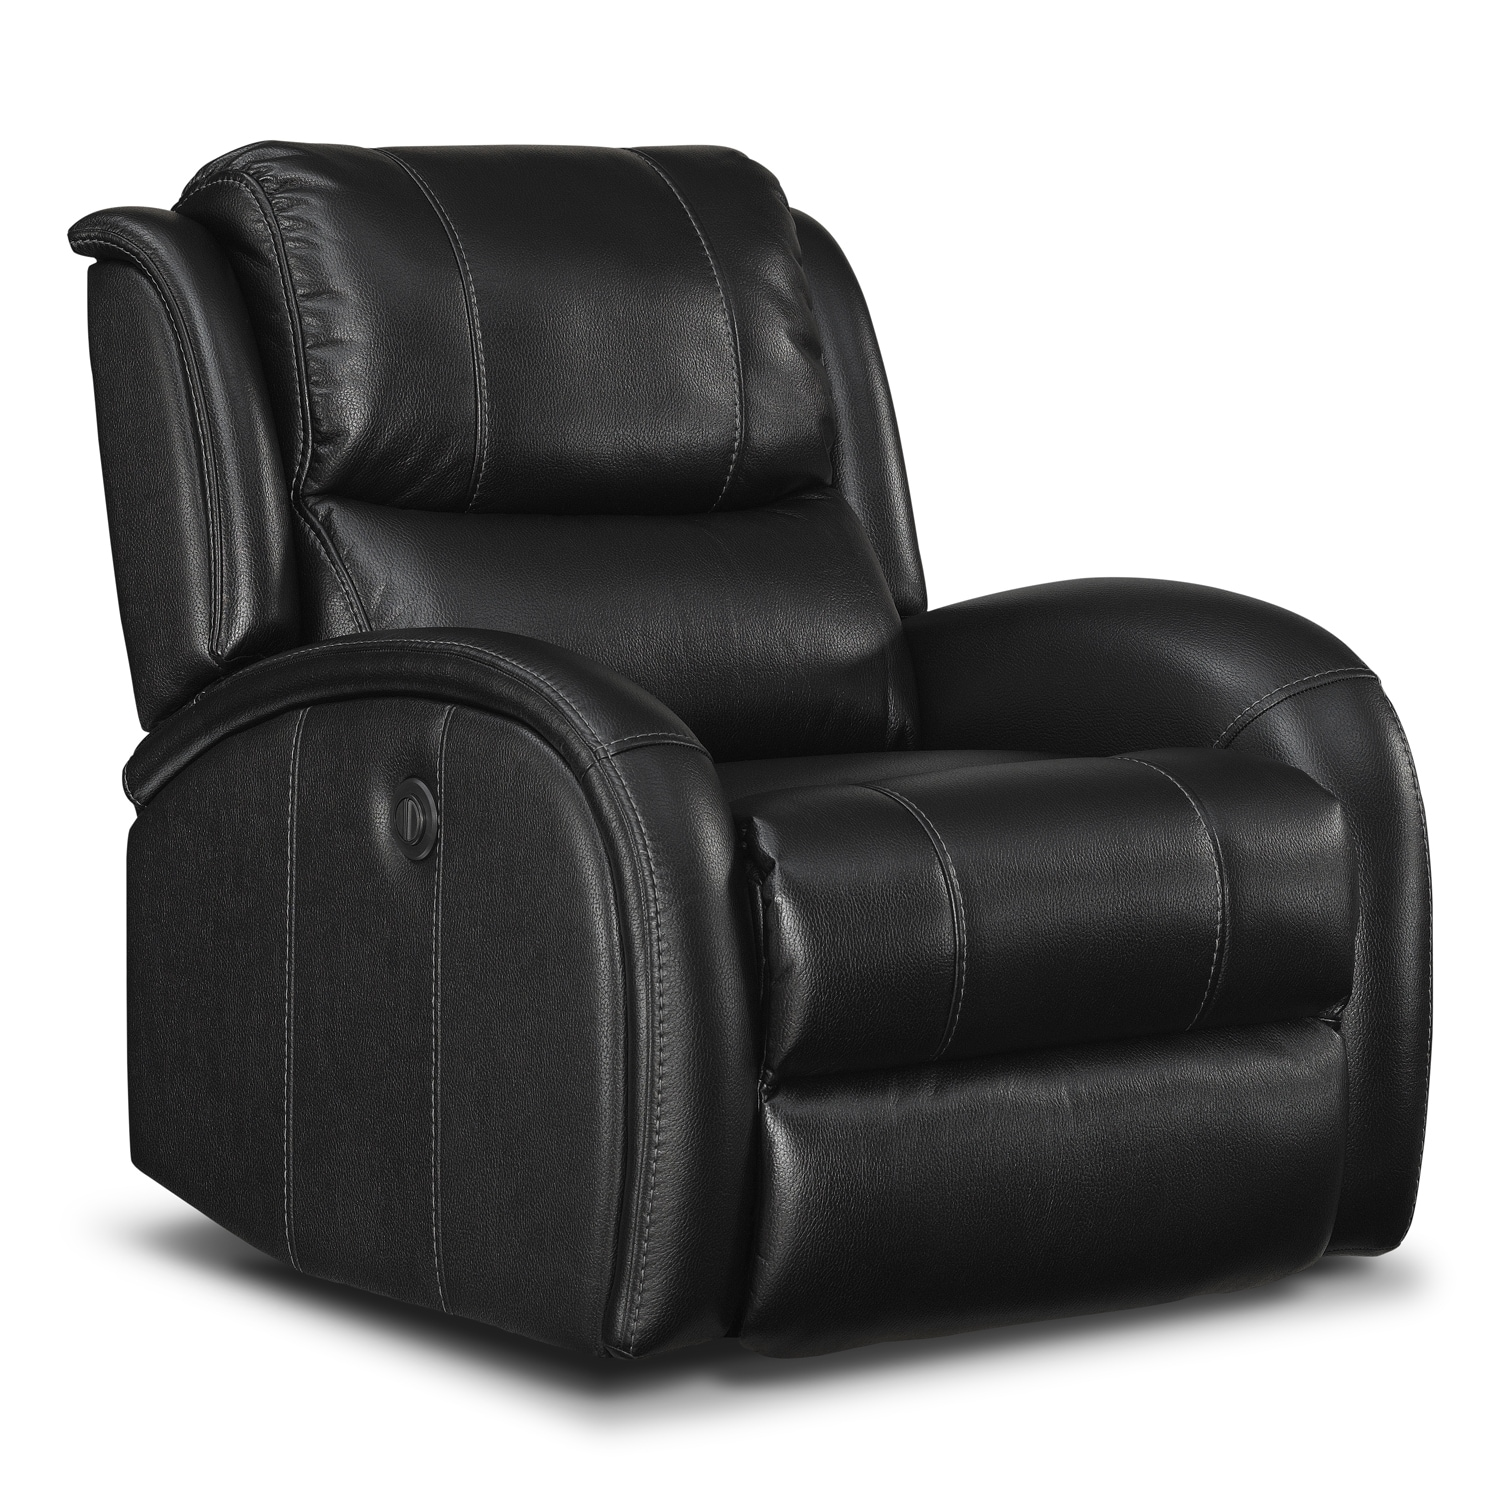 Corsica power recliner black value city furniture for Chair recliner